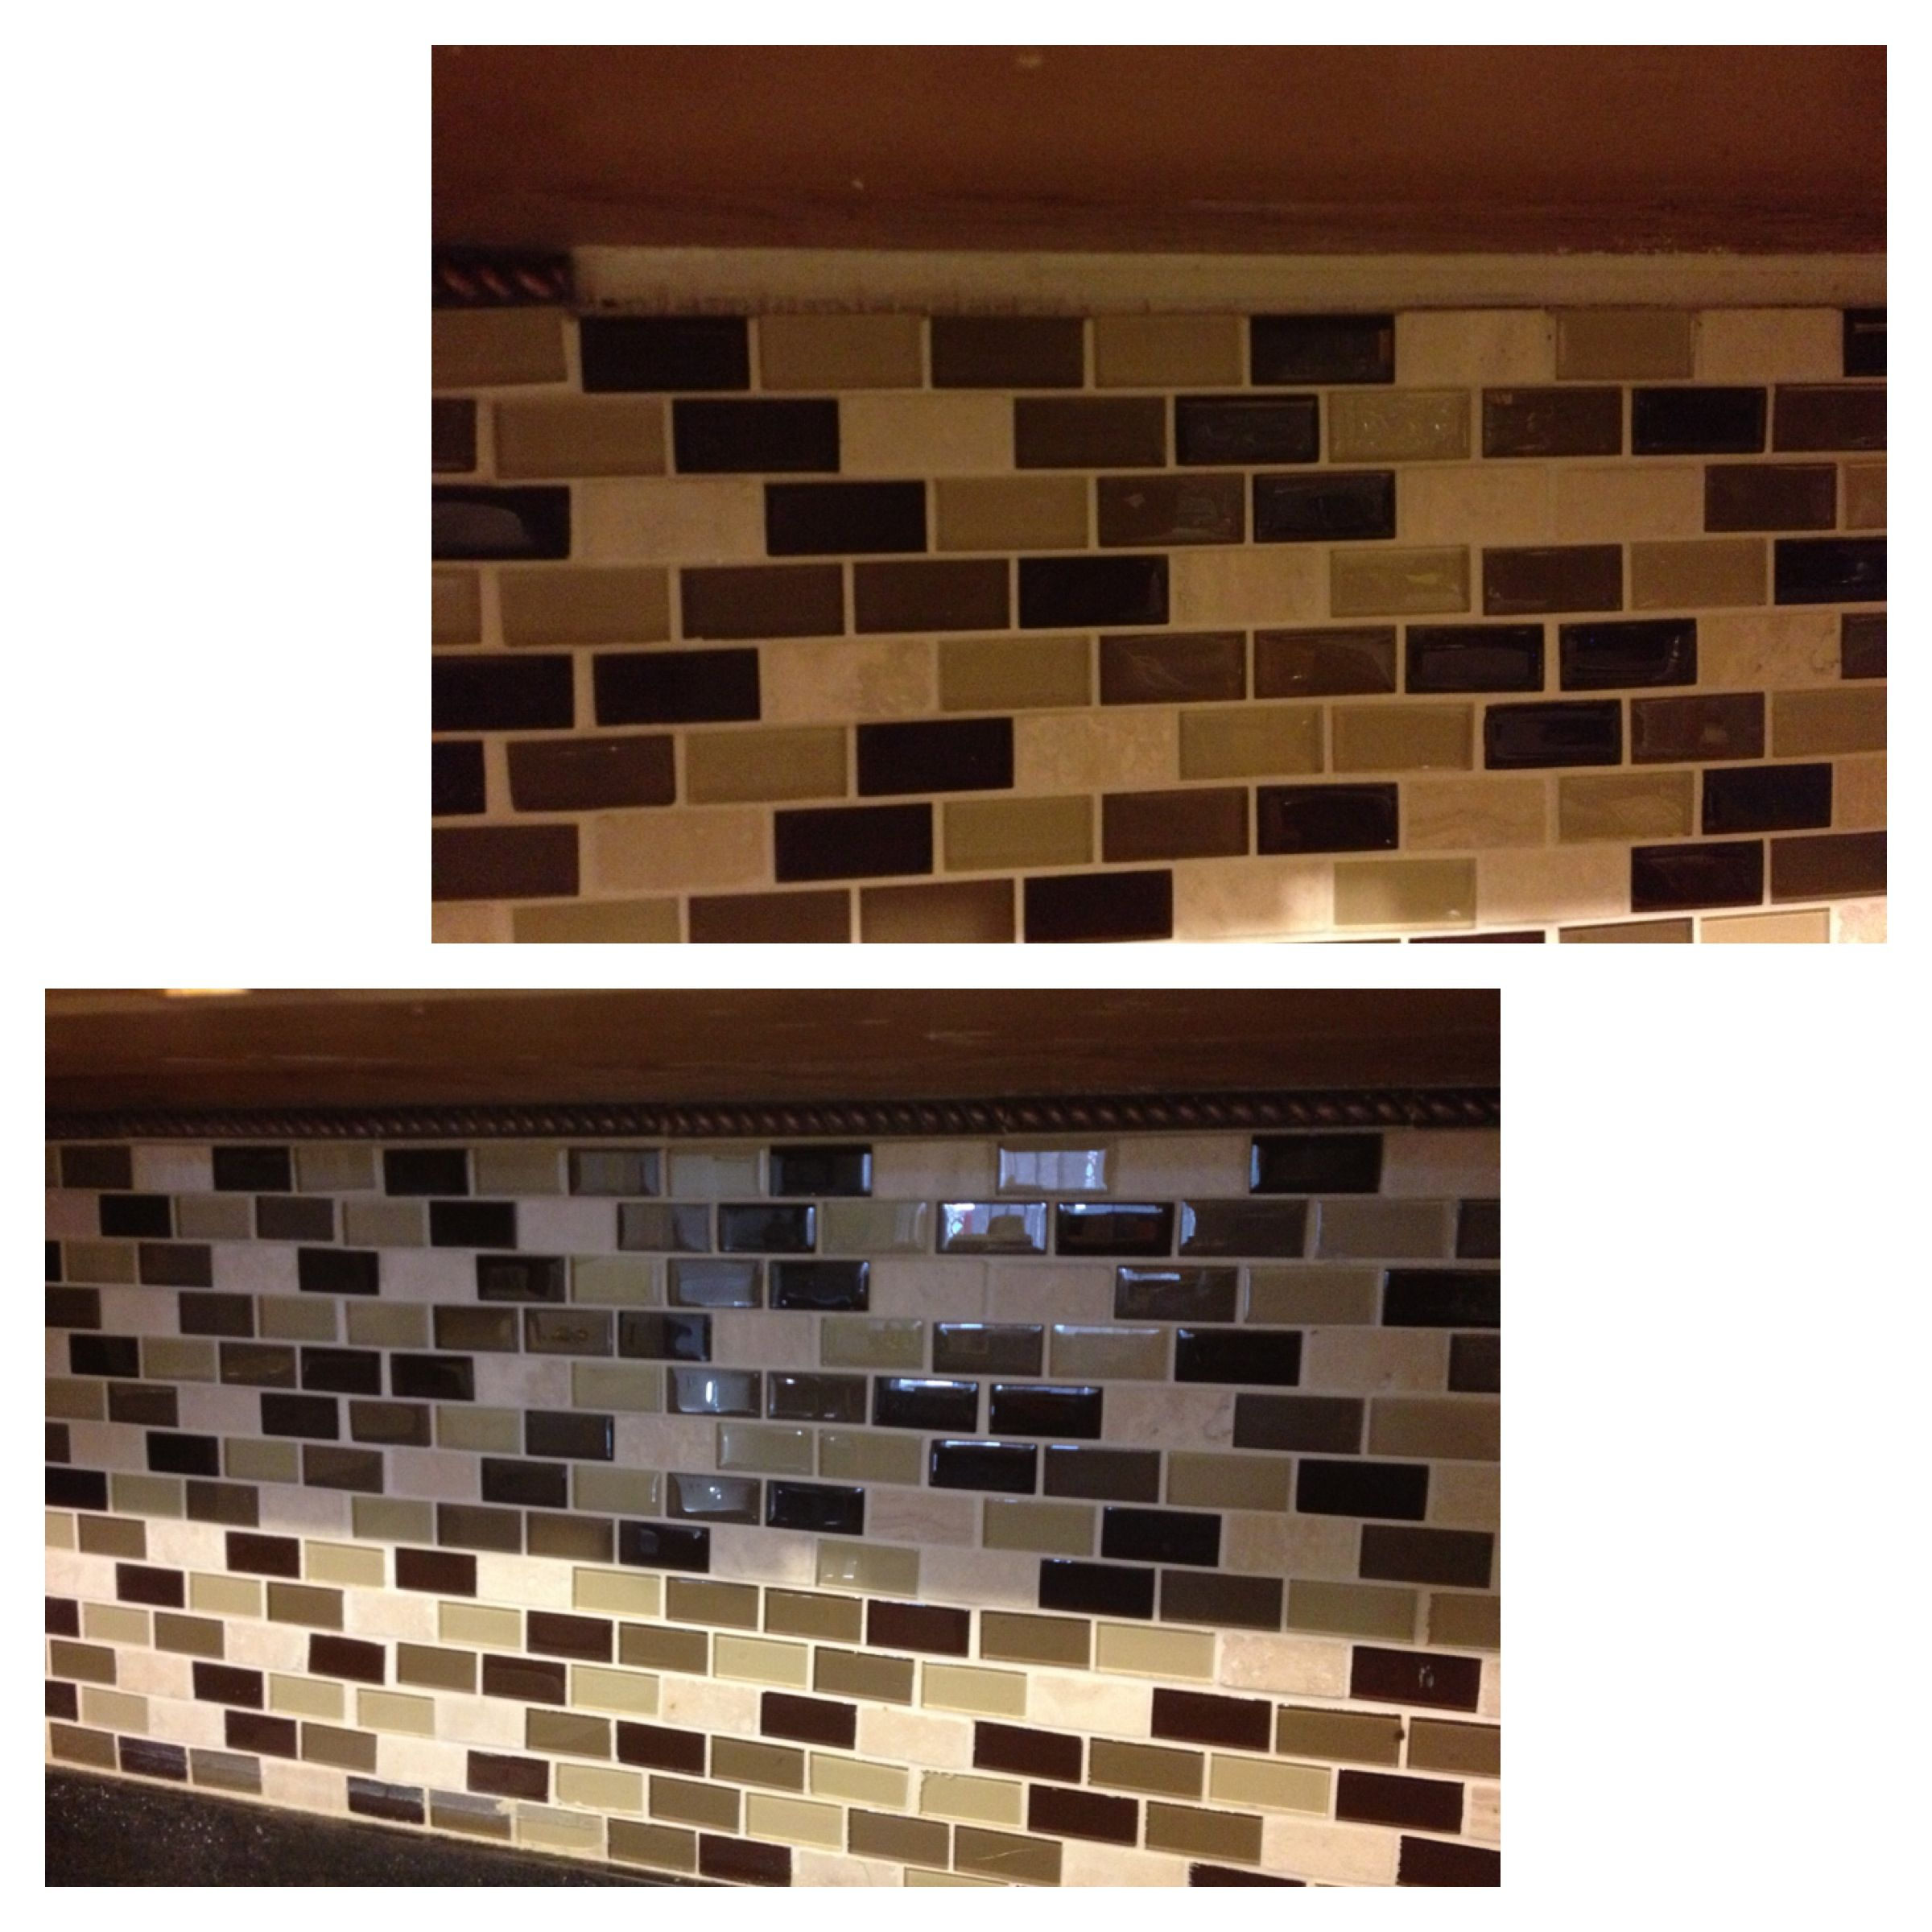 - DIY Backsplash Touch Up, Adding A Copper Brown Rope Border To Fill